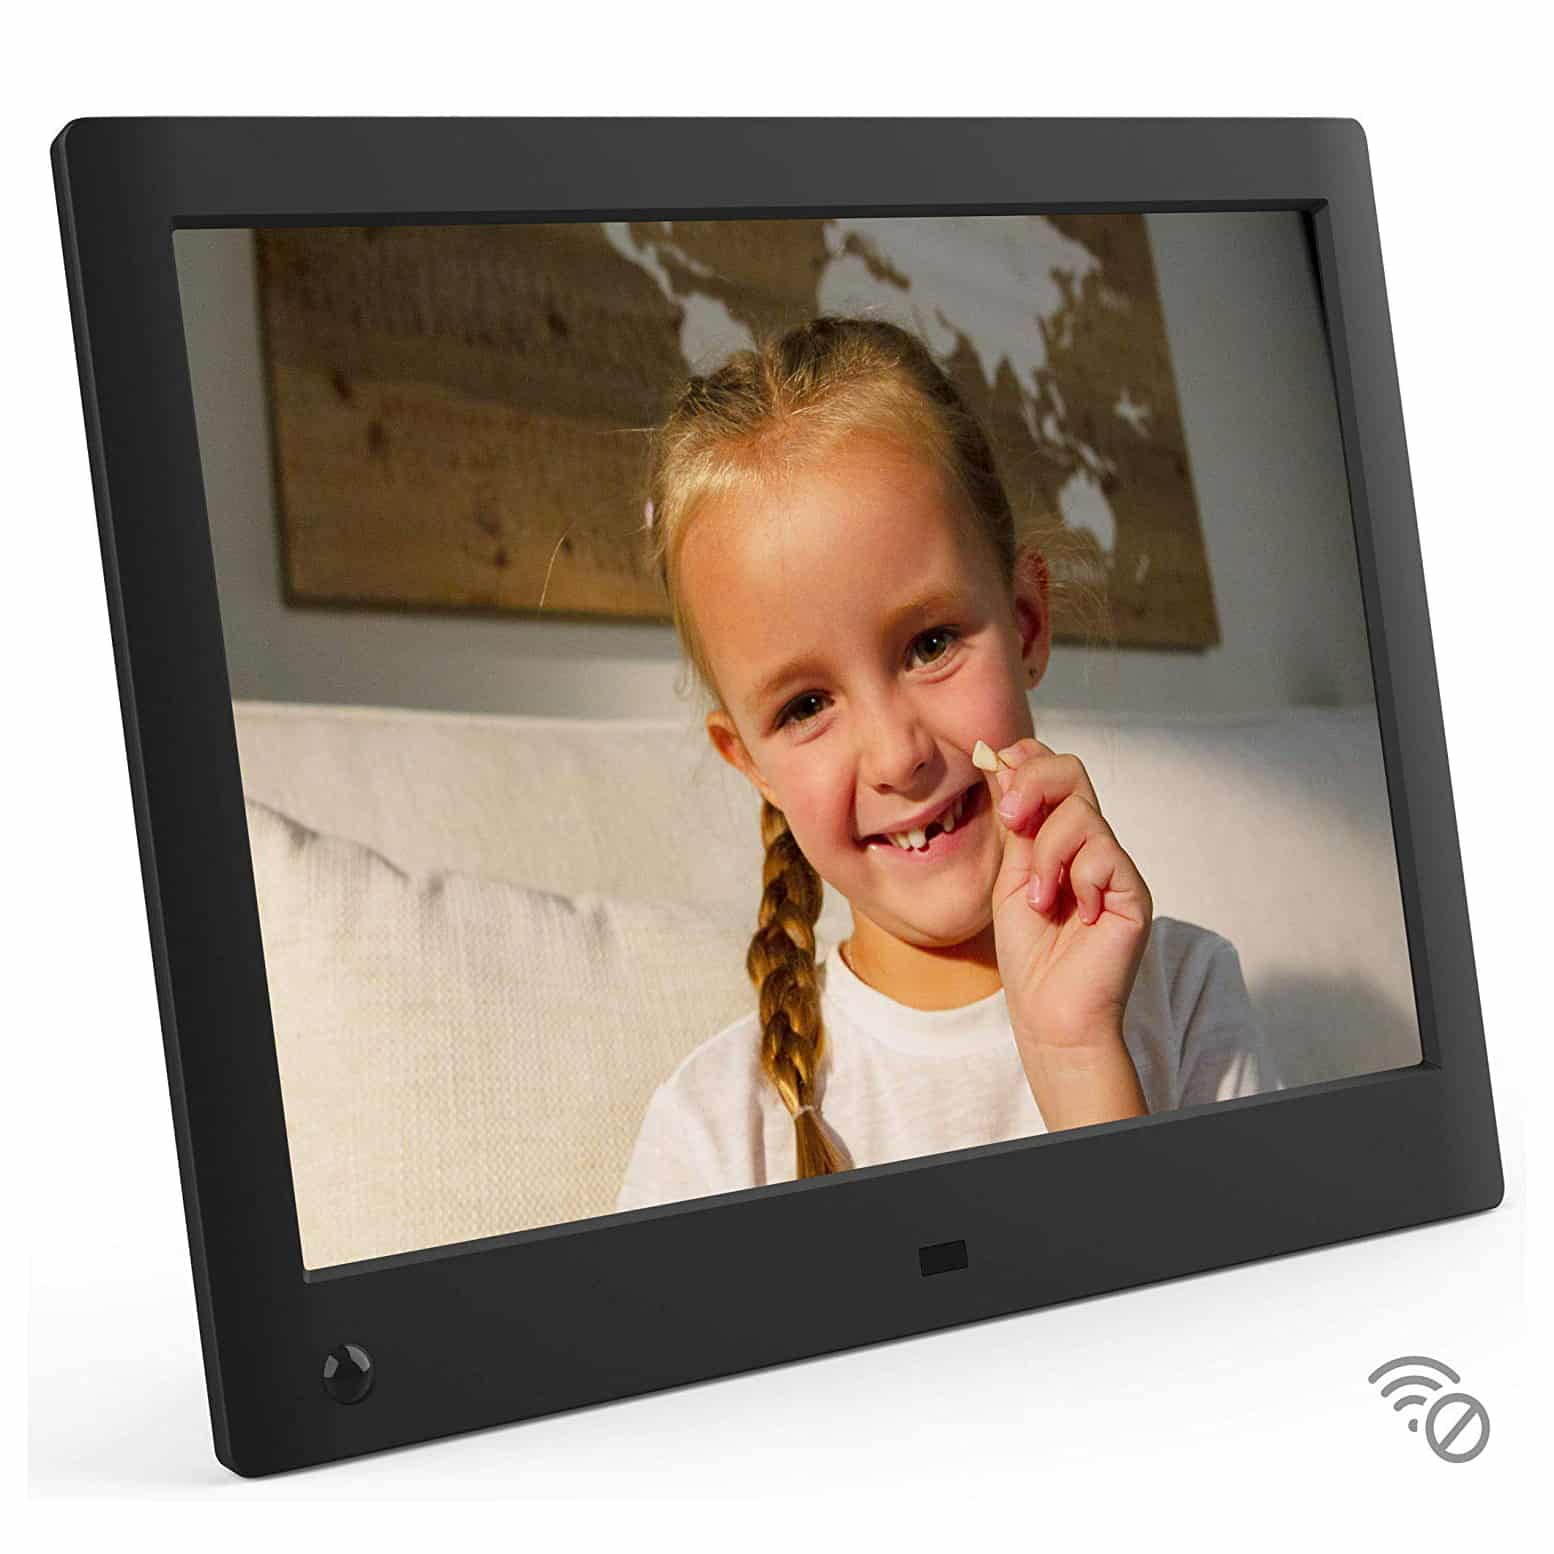 NIX Advance 10 Inch USB Digital Photo Frame